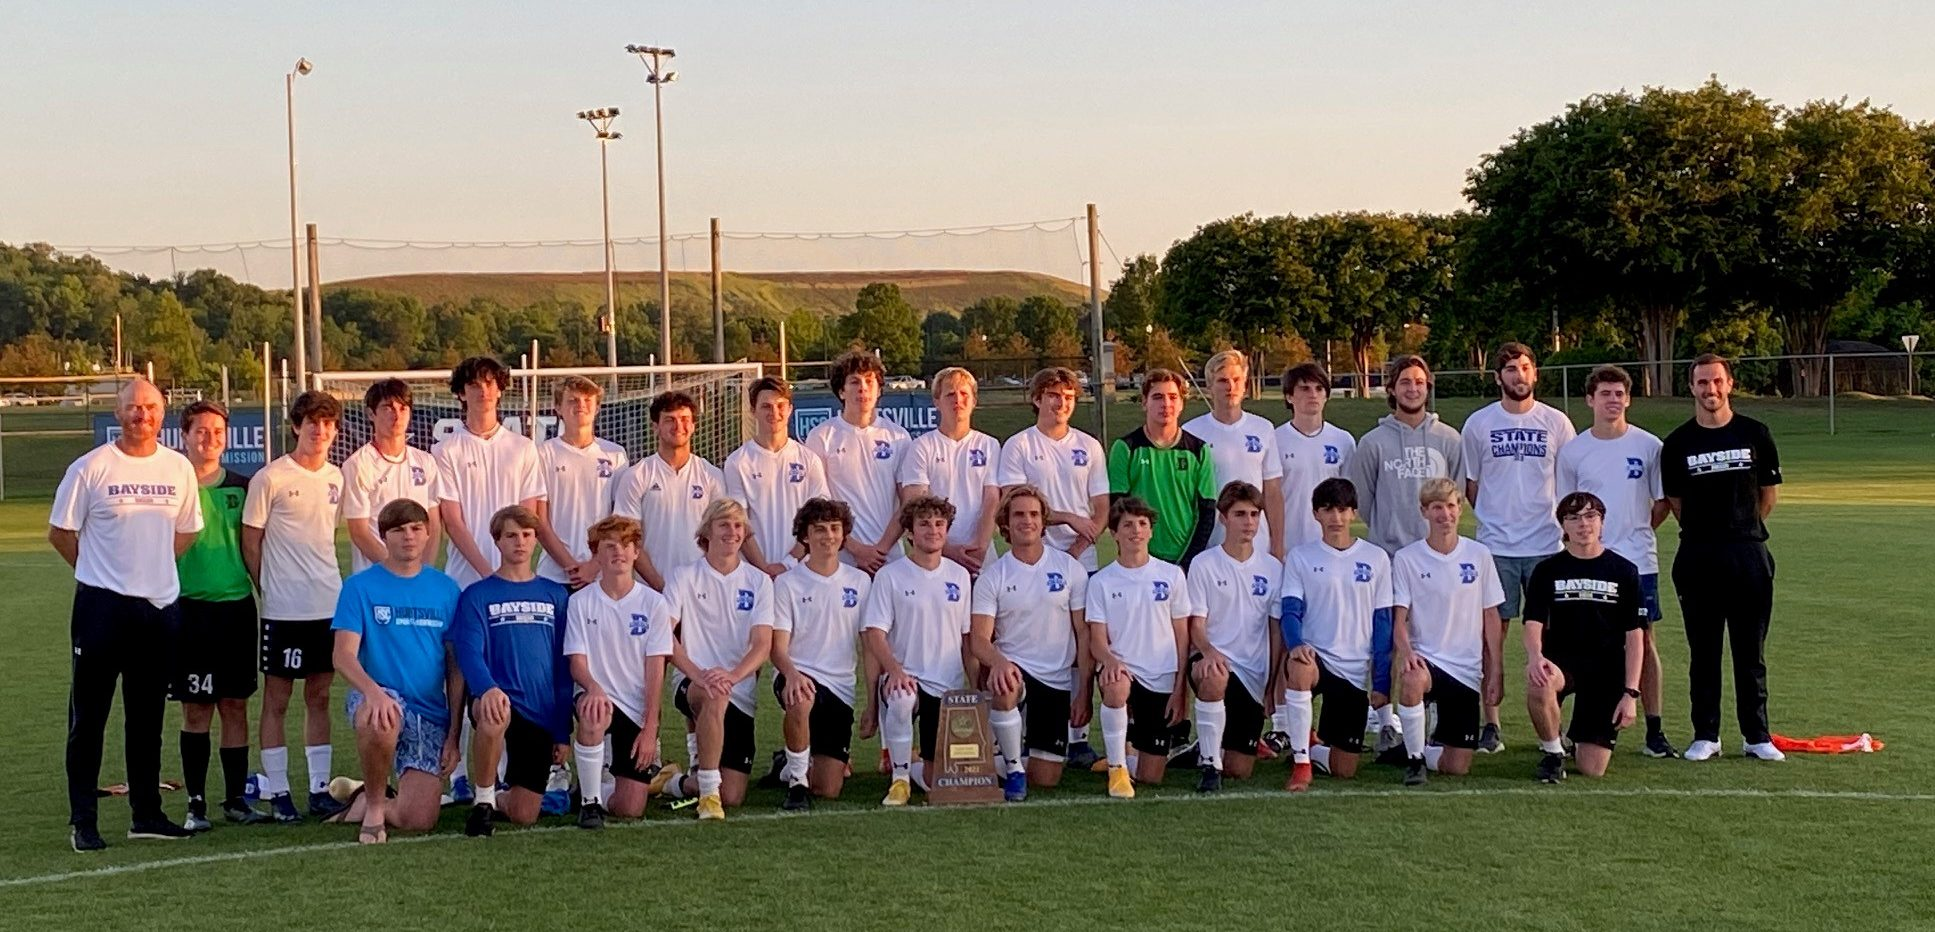 Class 1A-3A Boys' State Soccer Championship